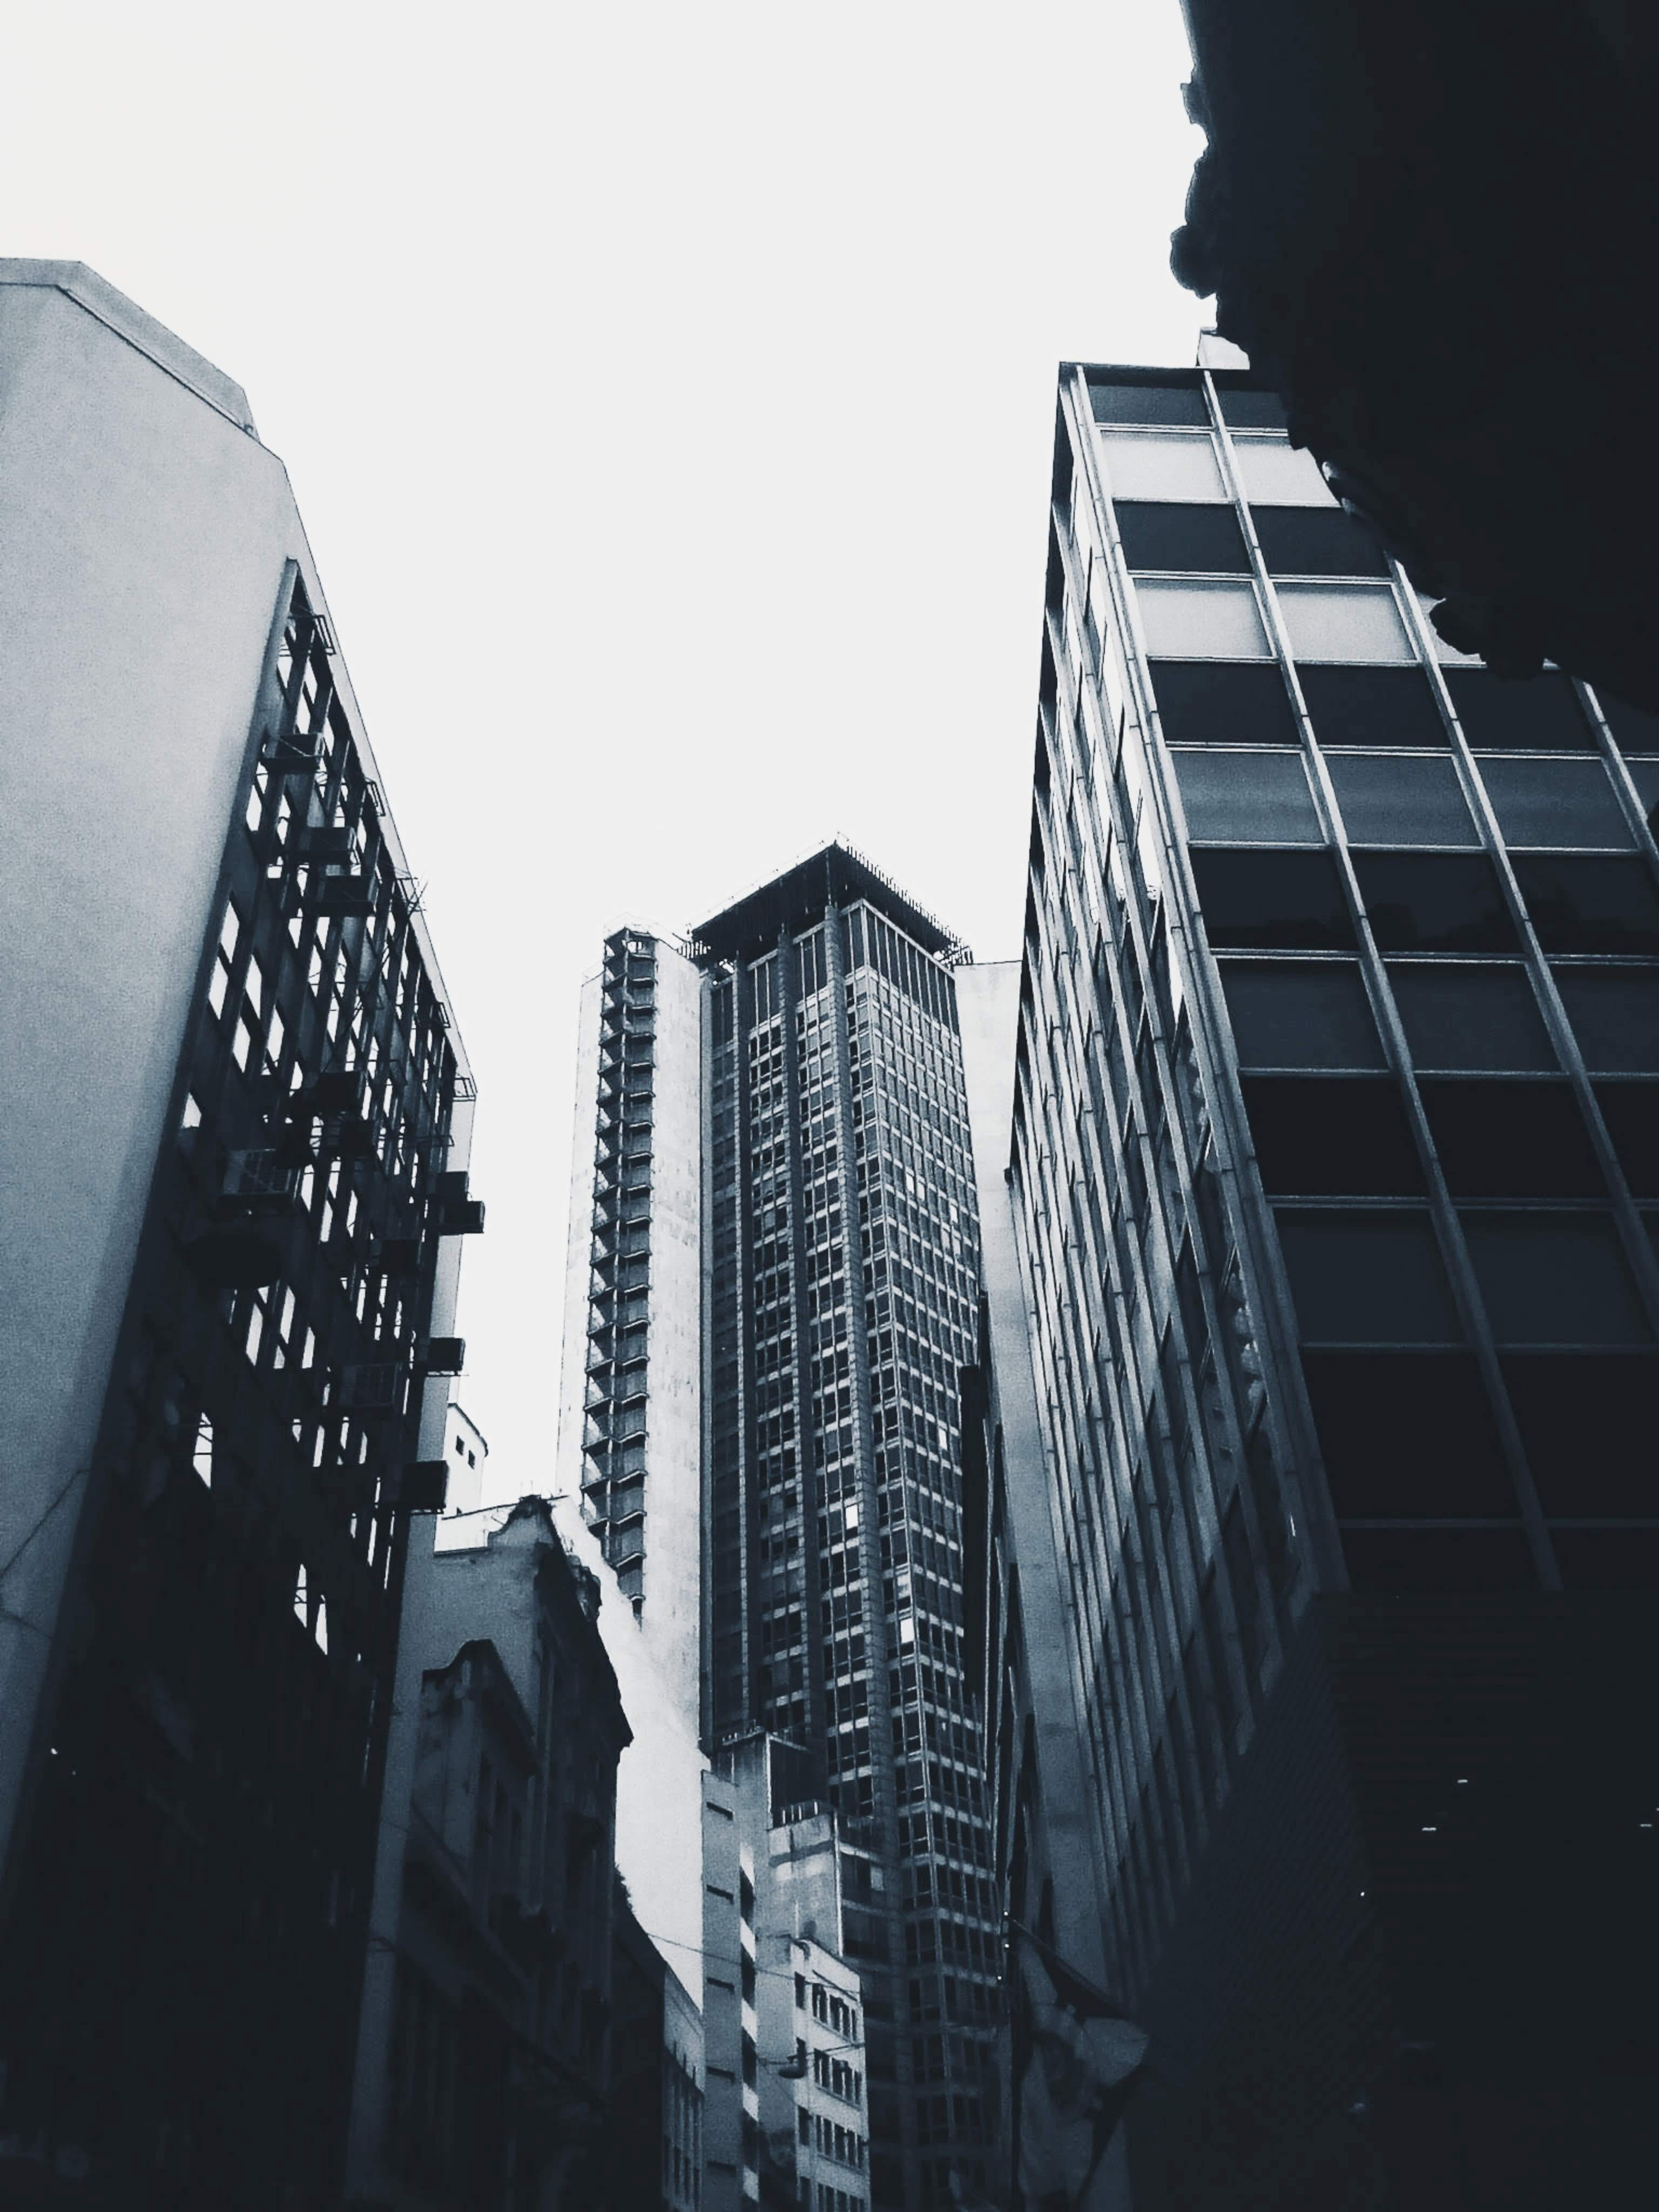 Low Angle Photography of Tall Buildings